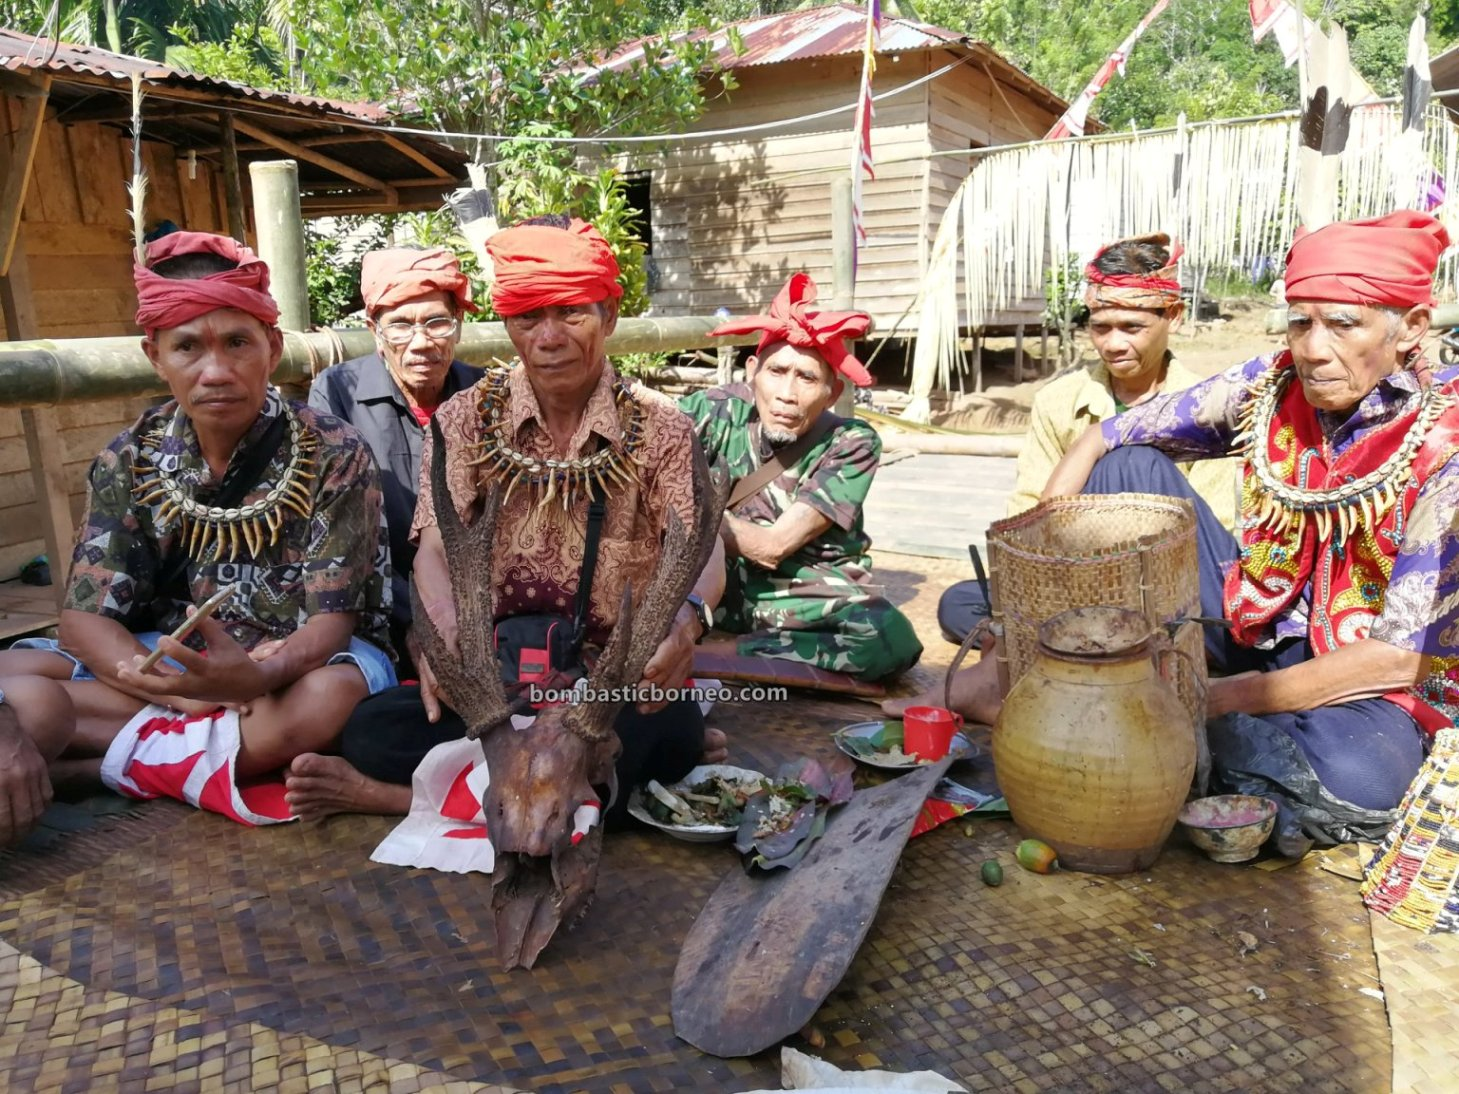 thanksgiving, destination, Culture, Indonesia, Kalimantan Barat, Desa Bengkawan, Dayak Kowon't, indigenous, native, tribe, Tourism, Travel guide, Trans Borneo, 婆罗洲比达友文化, 印尼西加里曼丹, 孟加映达雅丰收节,